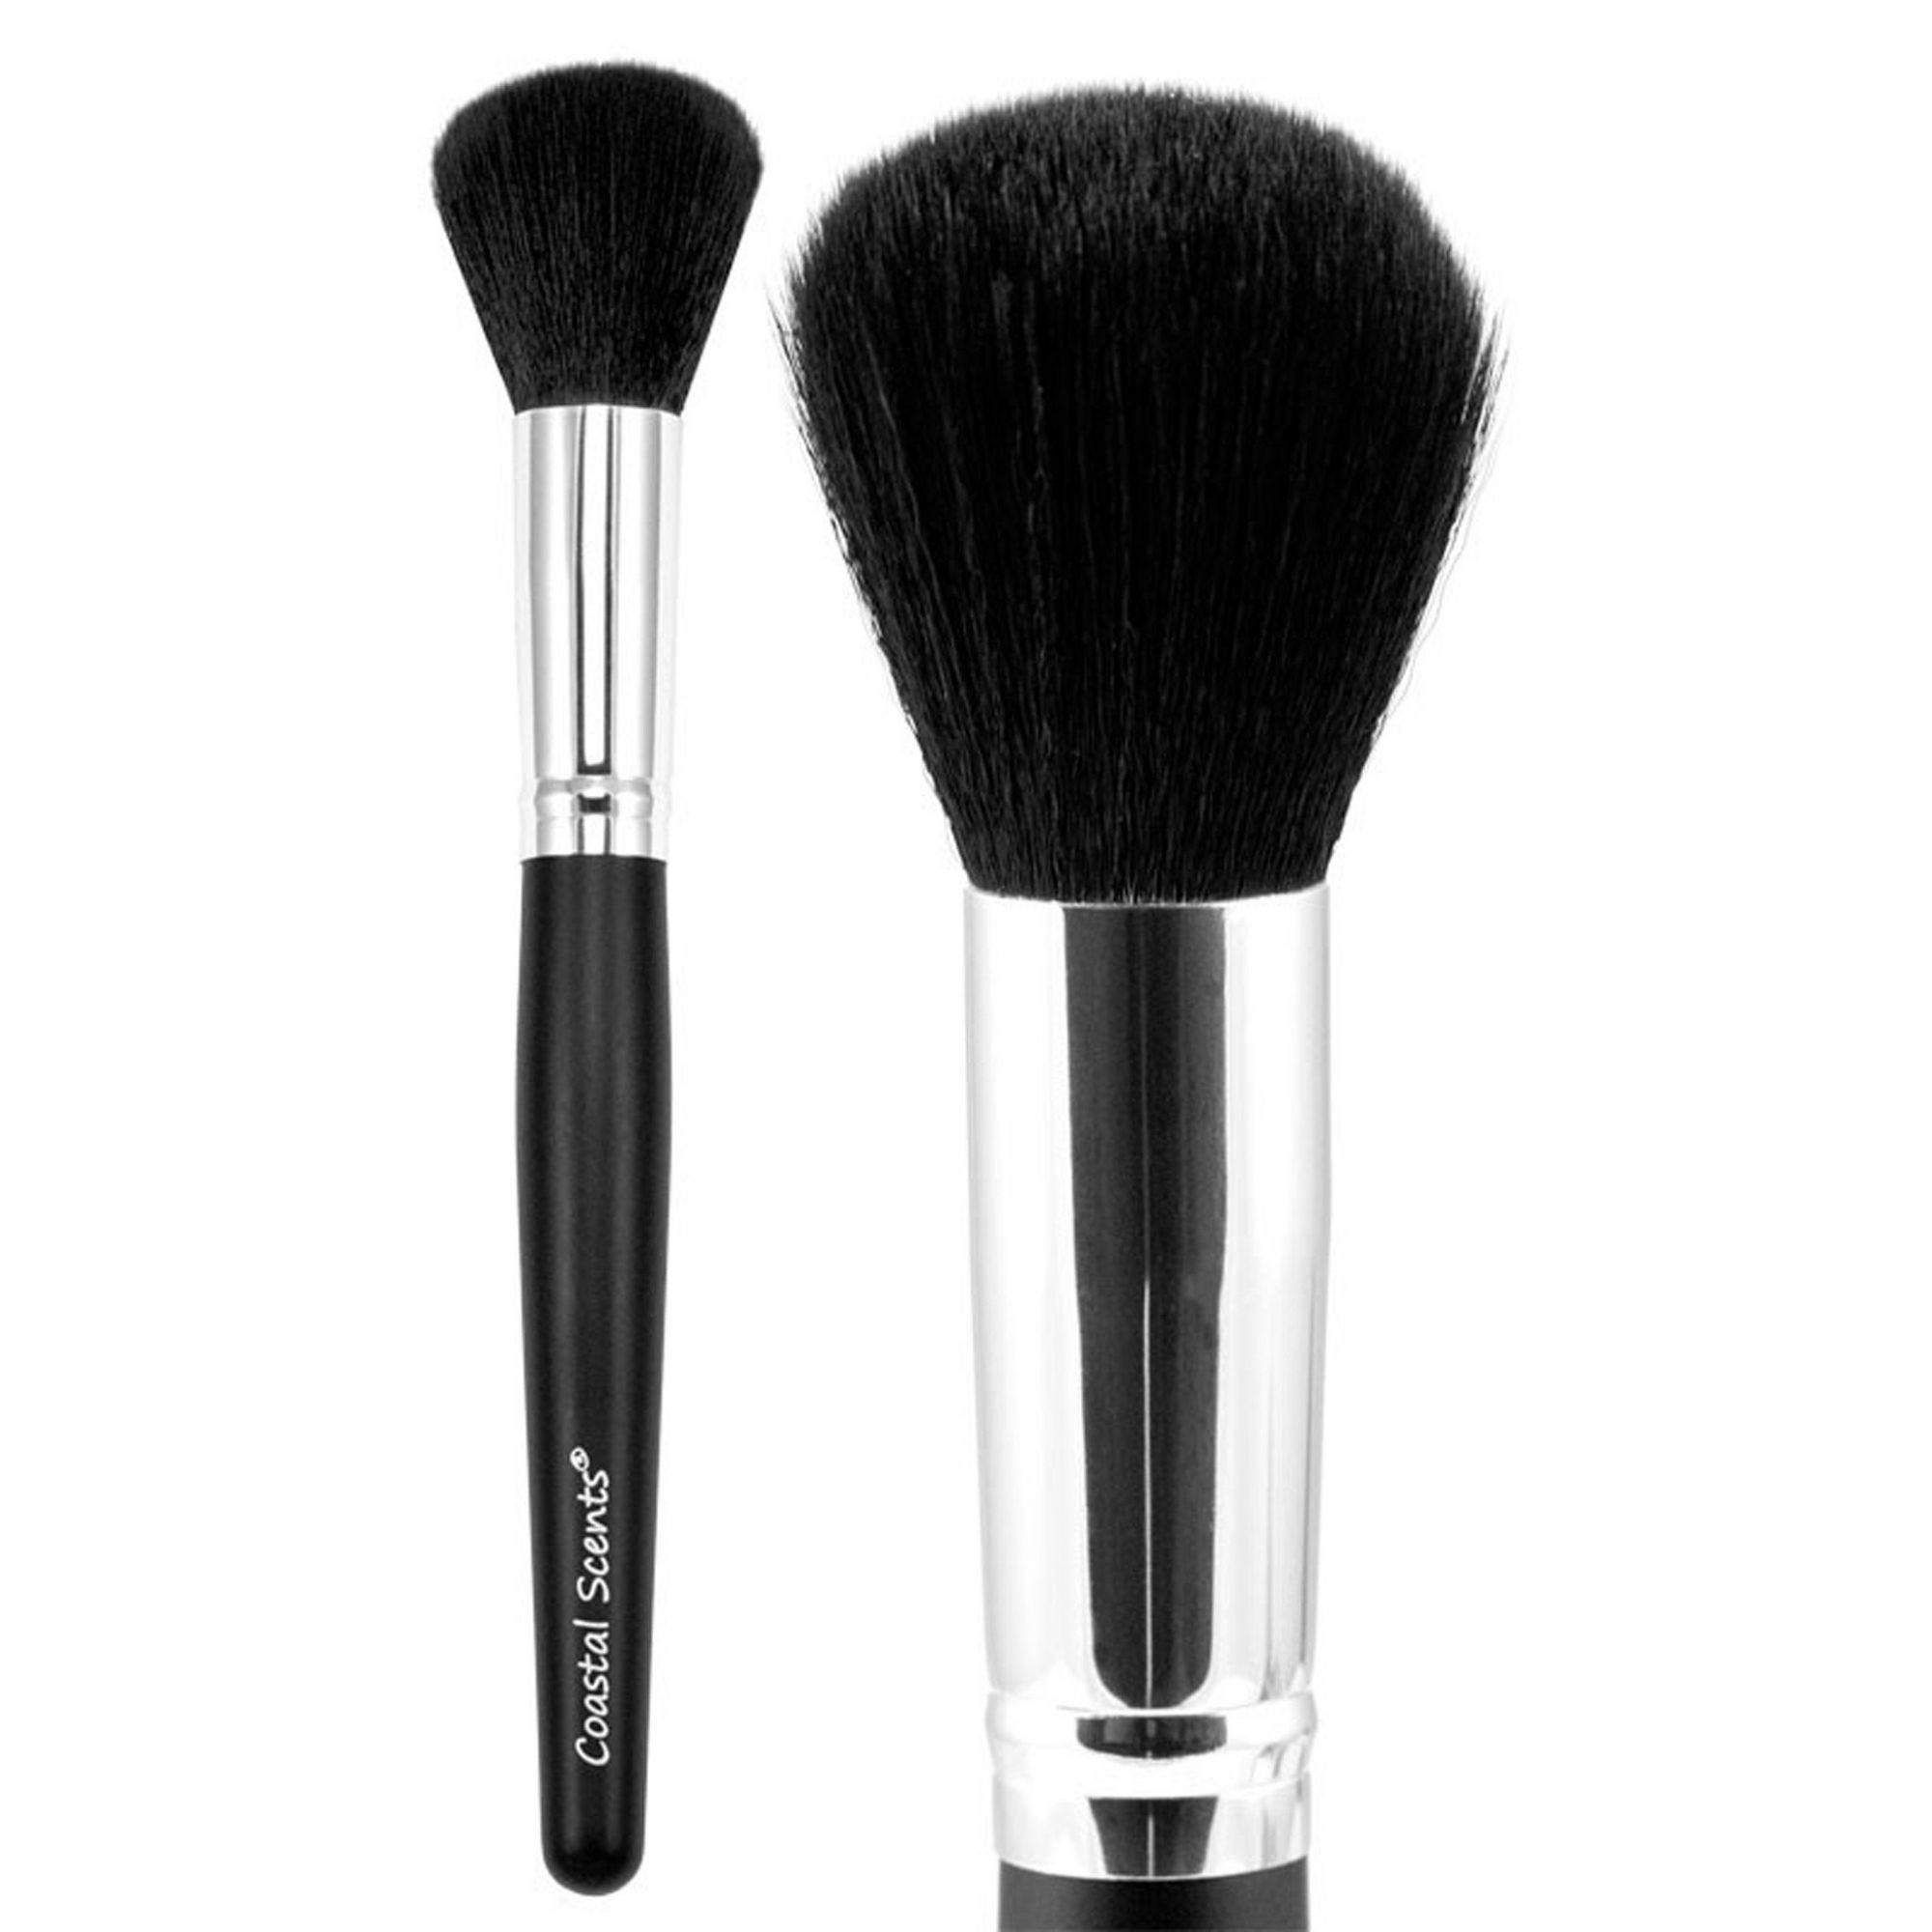 S-S27 POWDER BRUSH LARGE SYNTHETIC | COASTAL SCENTS